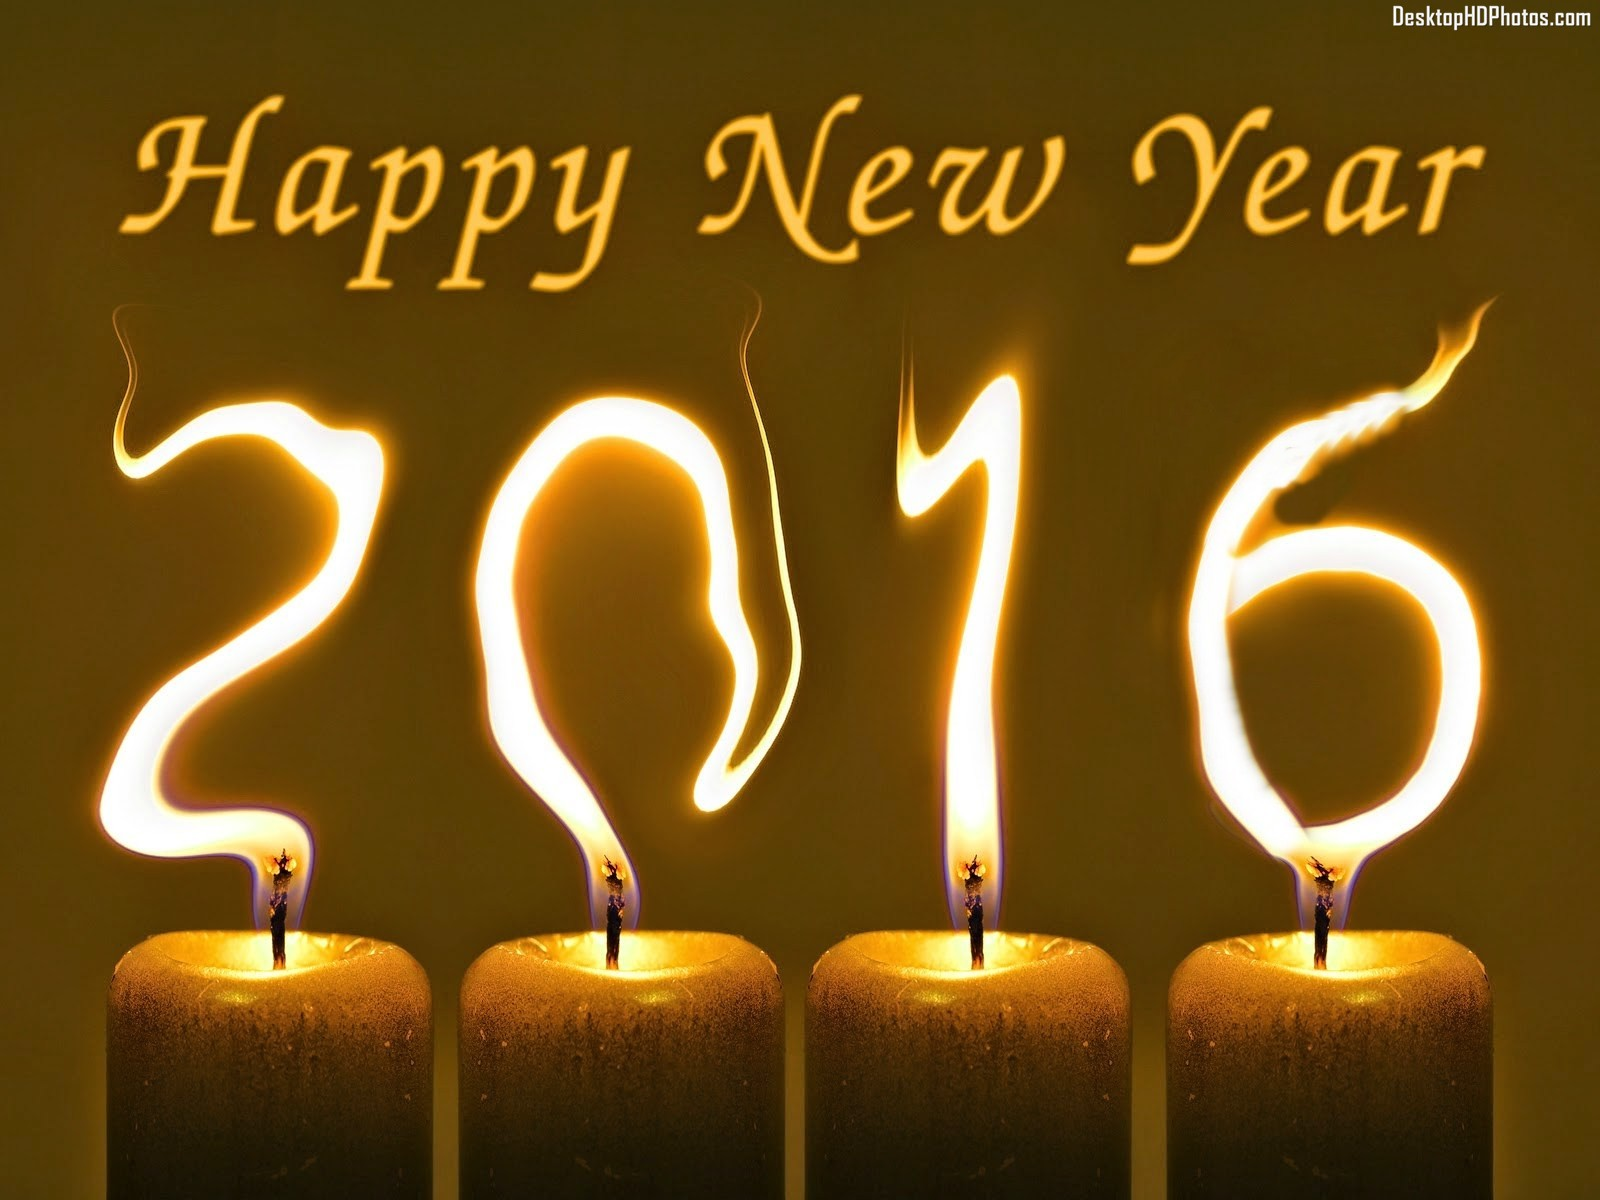 Happy New Year 2016 HD Images Wallpapers Photos 1600x1200